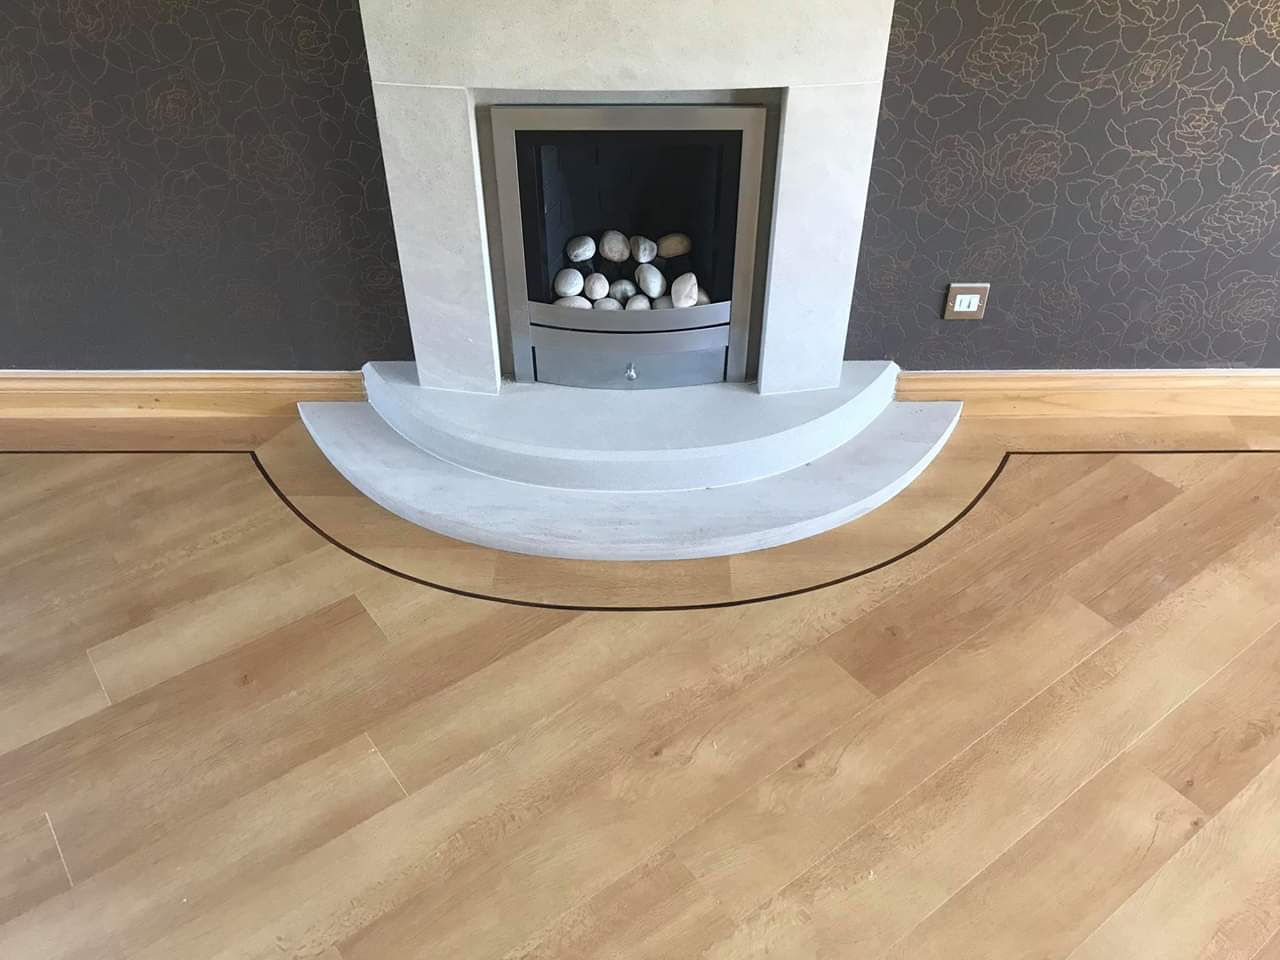 Border Detail in Karndean Opus wood plank around the fireplace